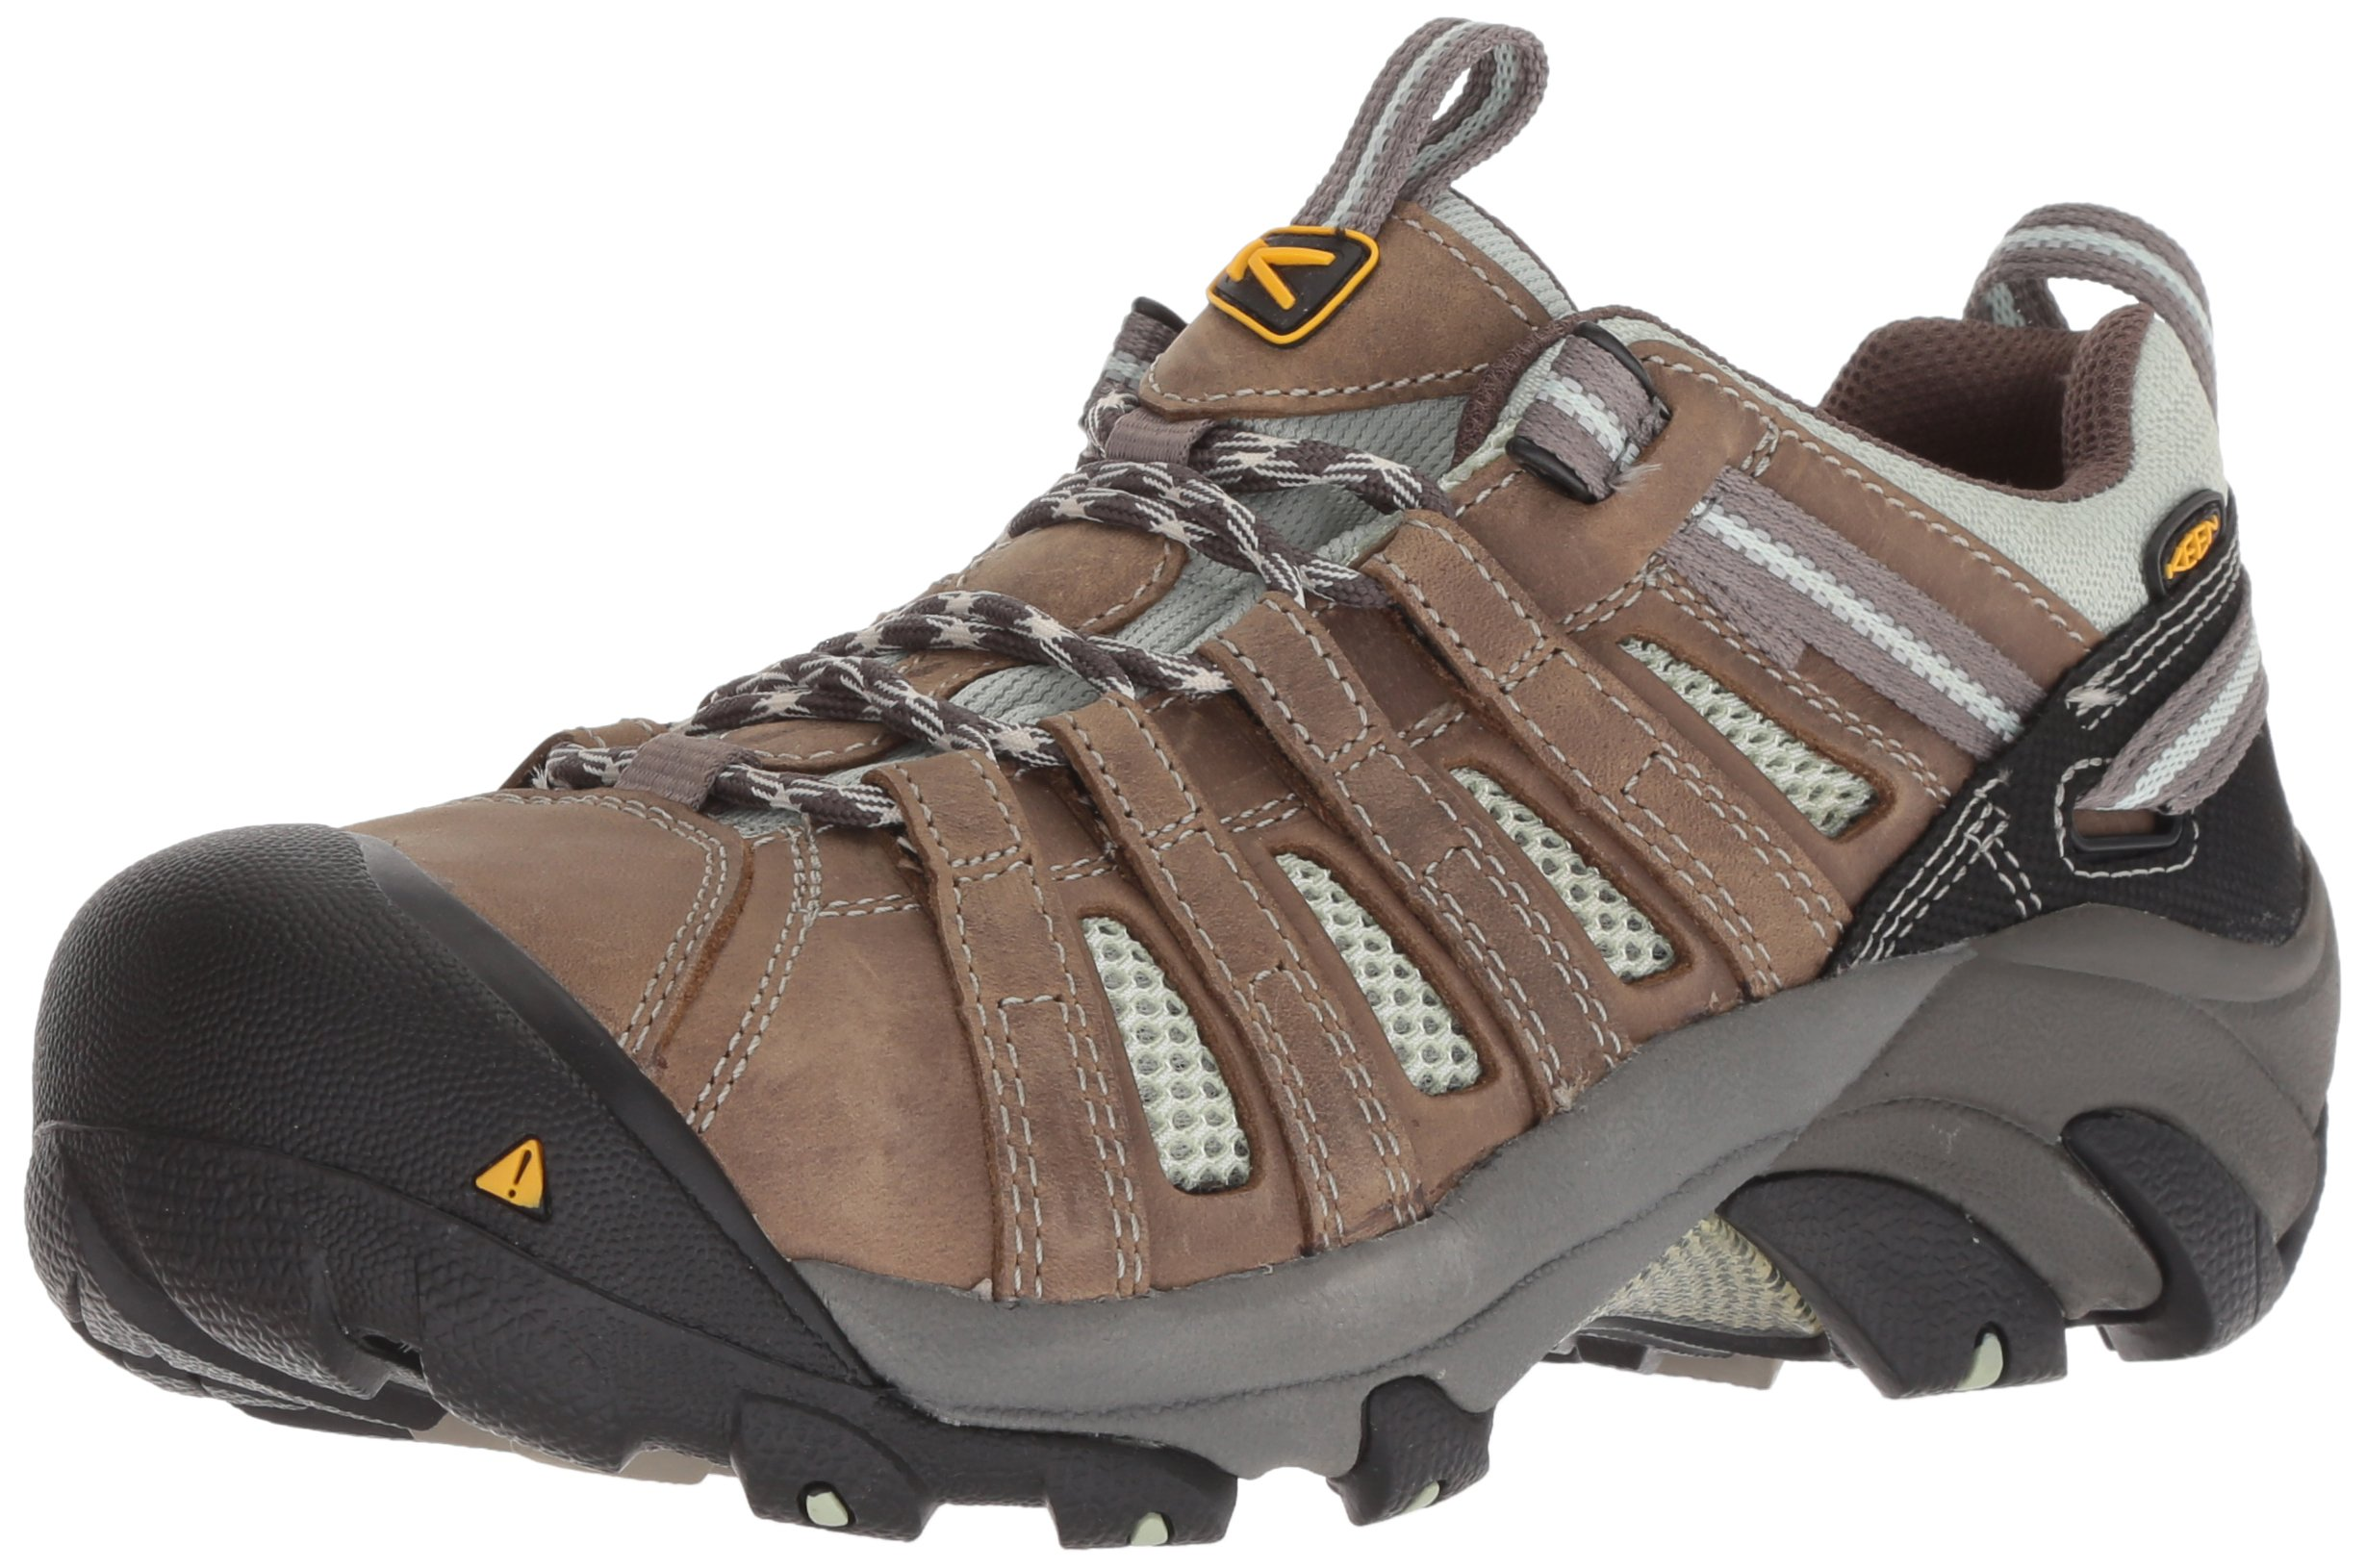 KEEN Utility Women's Flint Low Work Boot,Drizzle/Surf Spray,9 M US